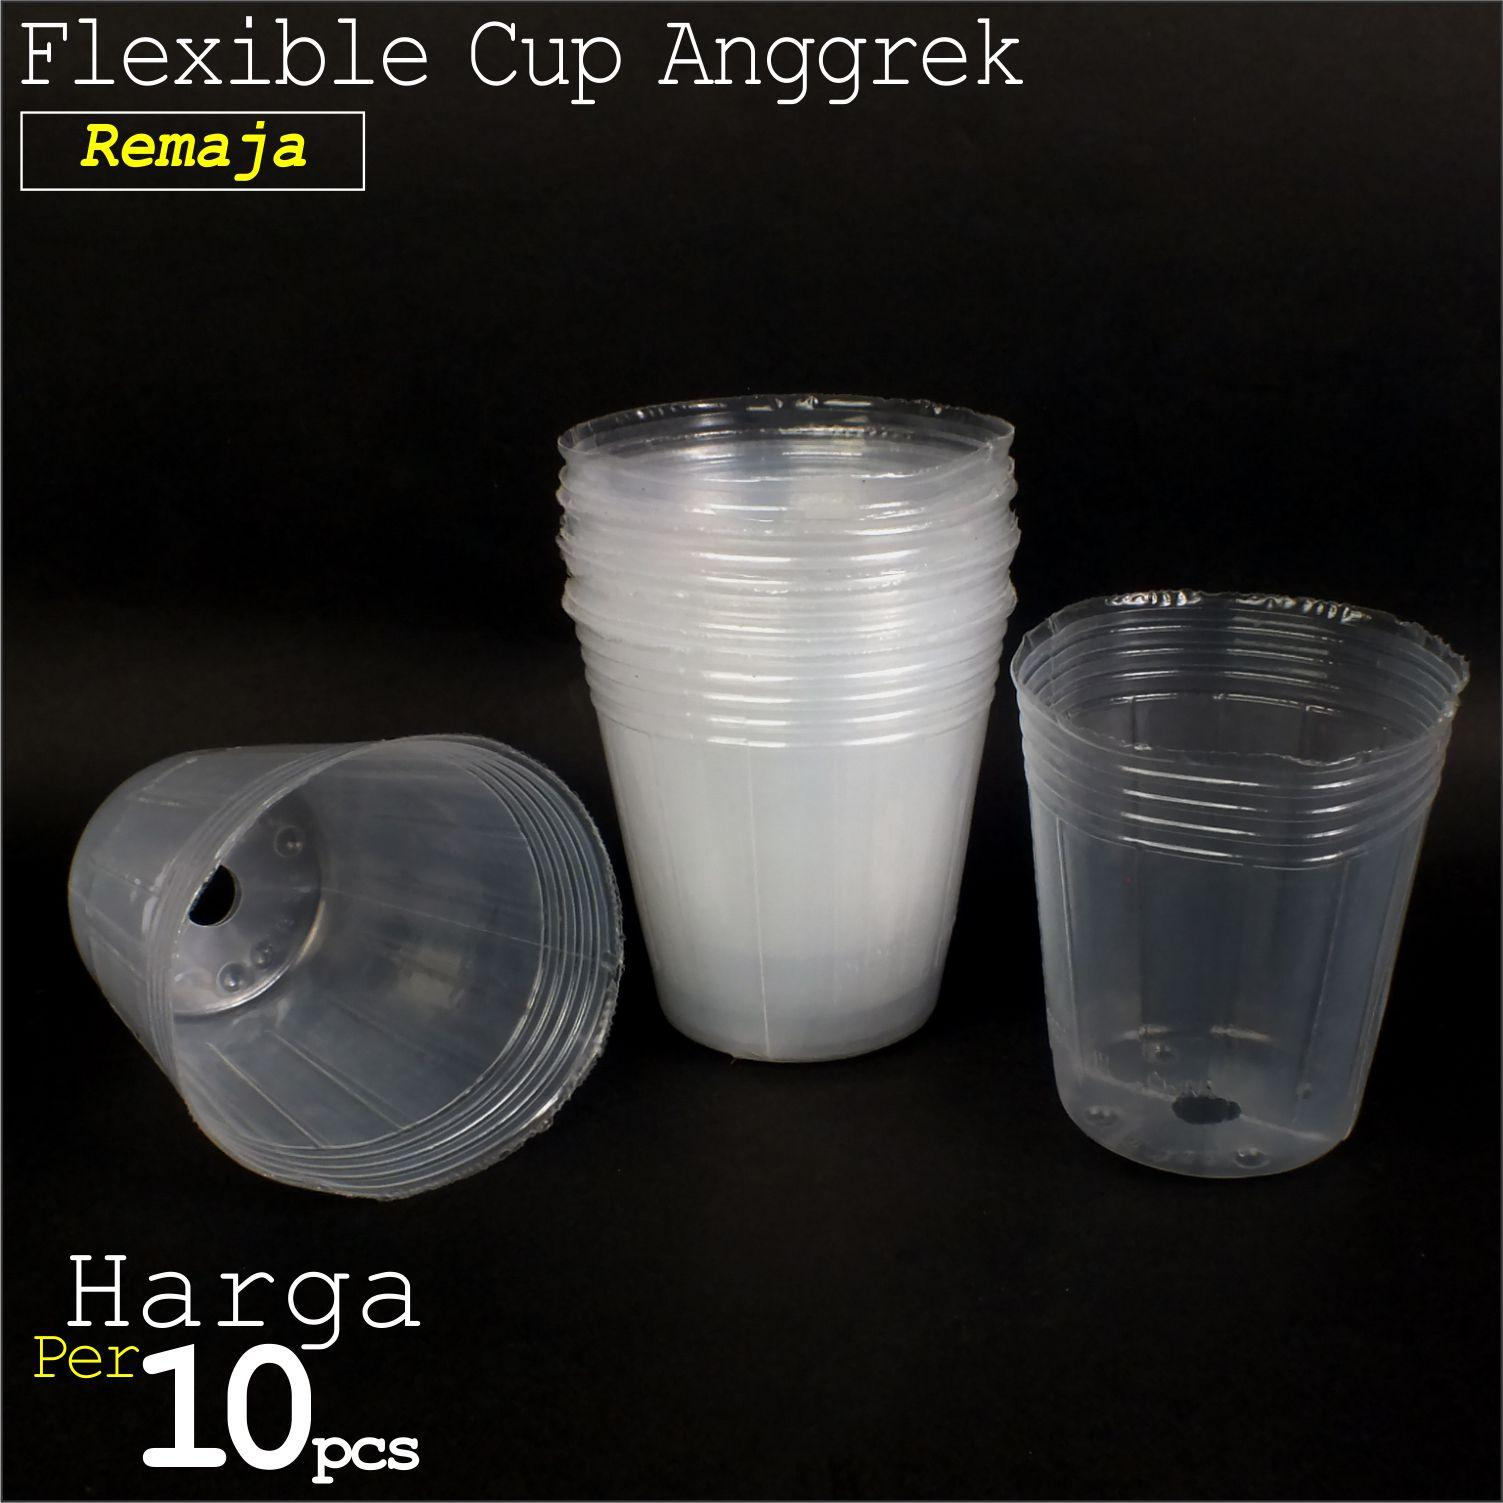 Sumber Plastik - Pot Plastik Flexible Cup Anggrek Pot Bibit Seedling Remaja 2.5 - 8 cm